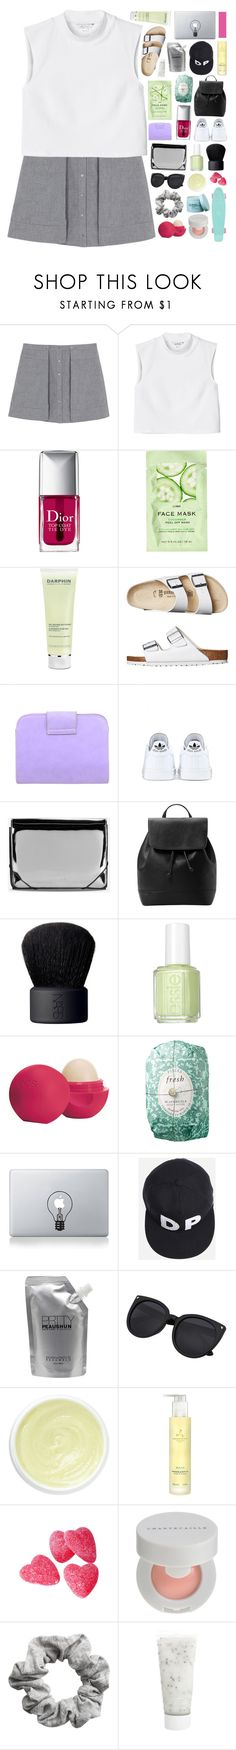 """""""daisy❁"""" by pheachy ❤ liked on Polyvore featuring T By Alexander Wang, Monki, Christian Dior, H&M, Darphin, Birkenstock, adidas, MM6 Maison Margiela, MANGO and NARS Cosmetics"""